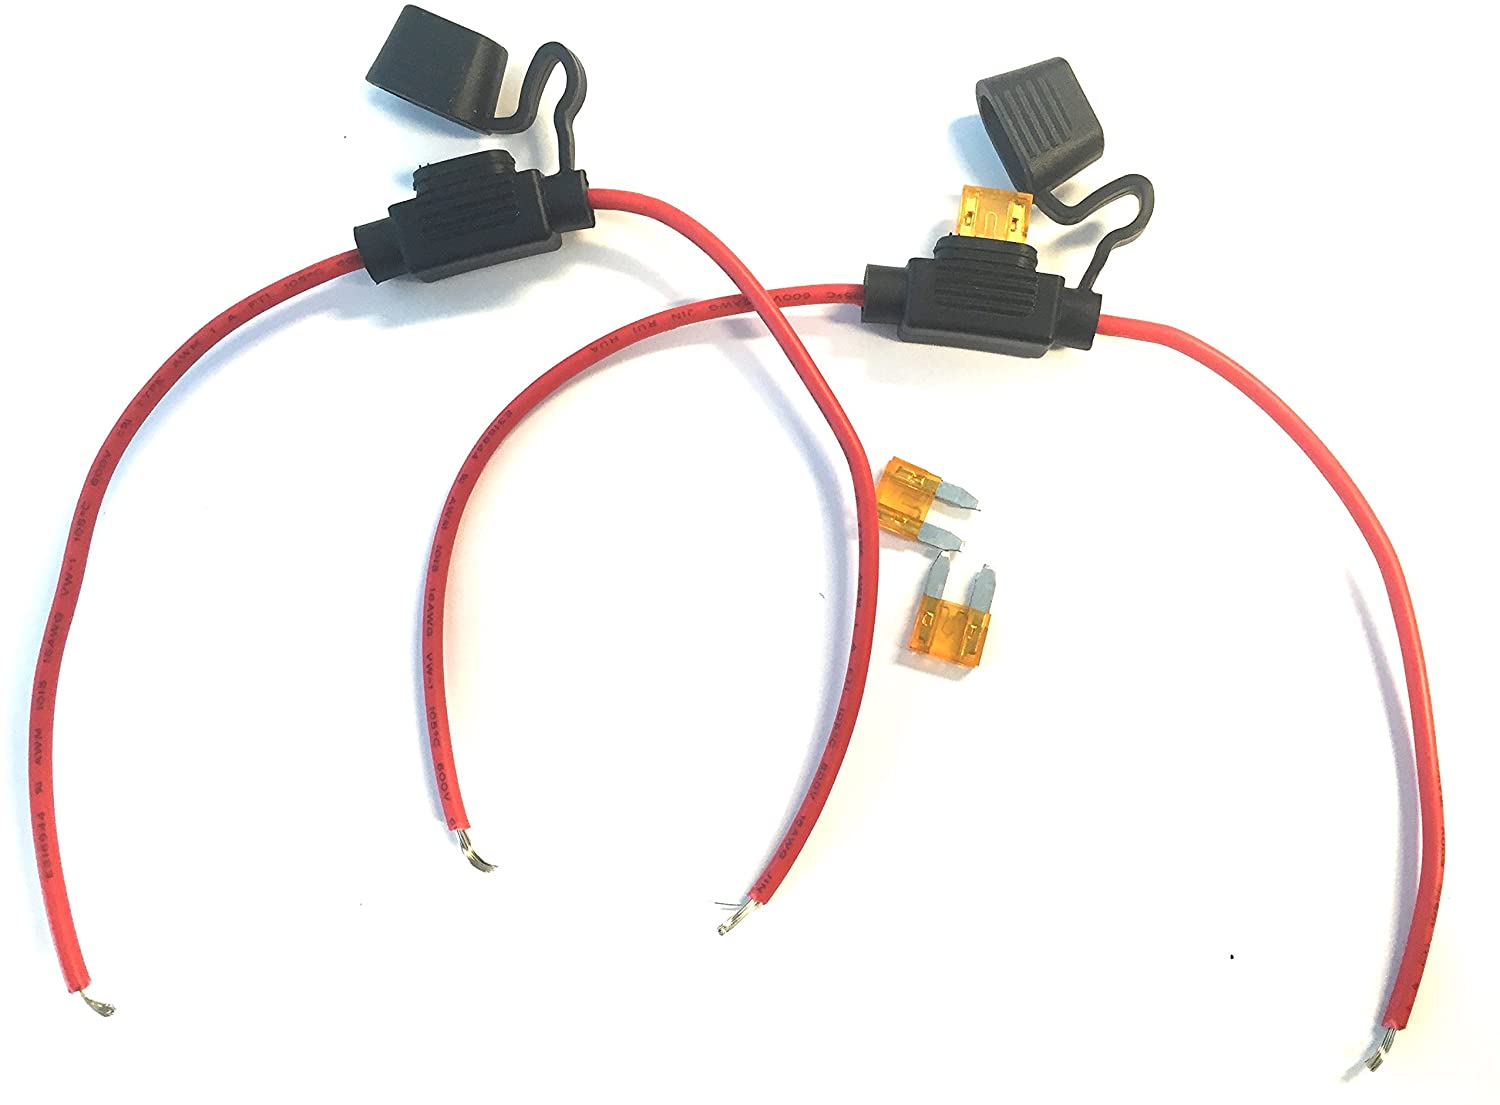 Inline Blade Fuse Holder Cable Leads Fuse Protection Kit - (for auto 12V 24V) 5 Amp